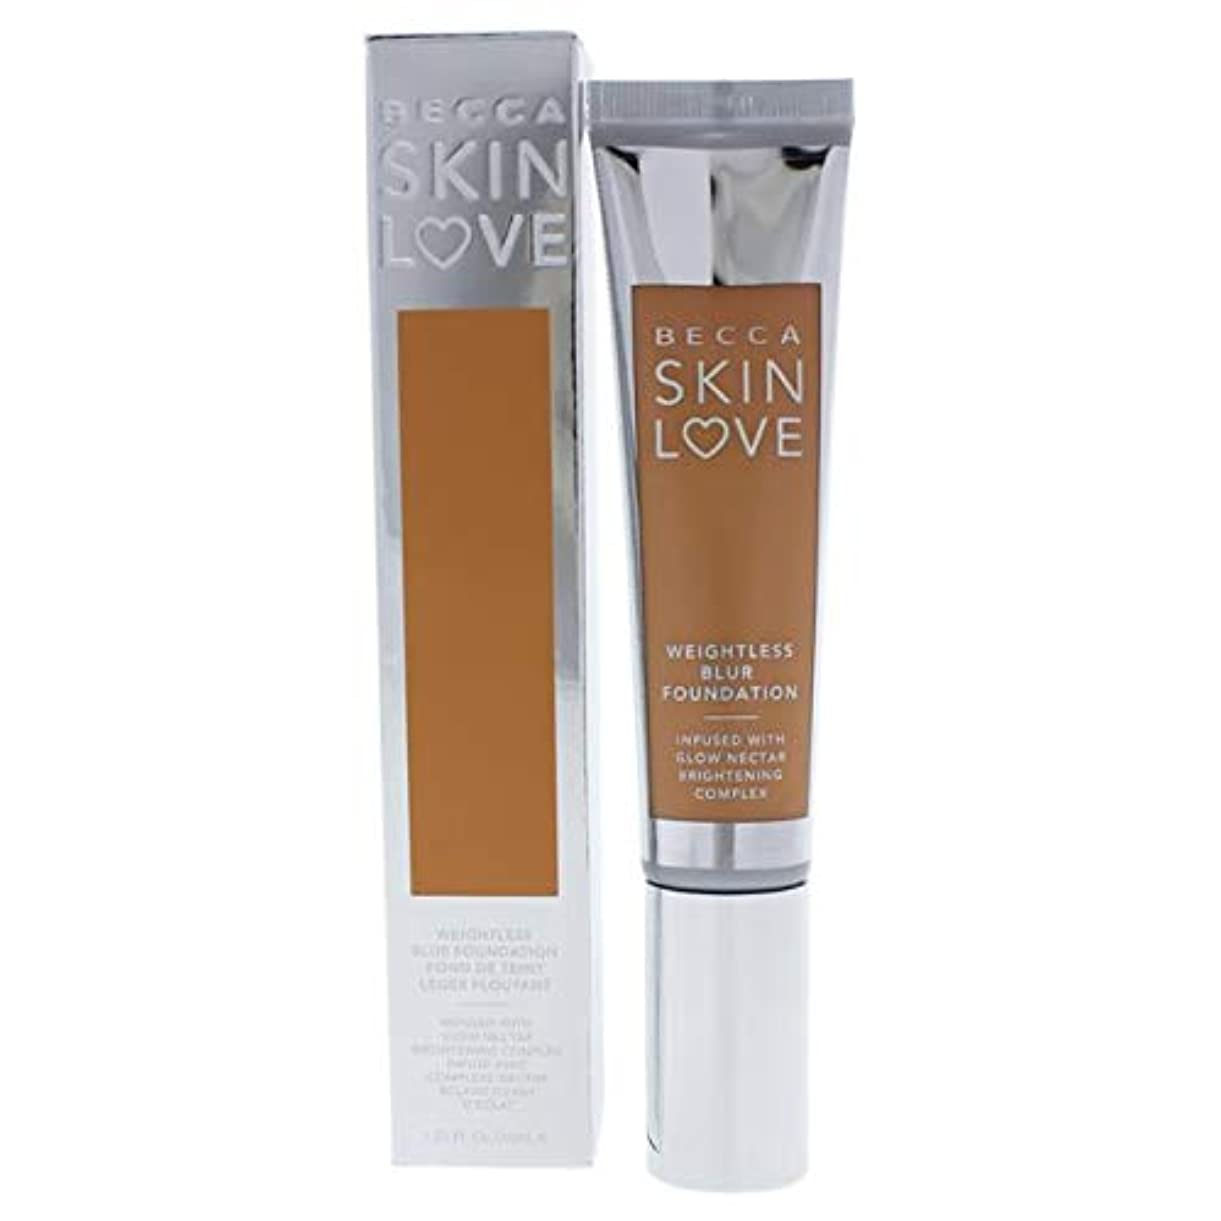 絶滅した敬結晶ベッカ Skin Love Weightless Blur Foundation - # Noisette 35ml/1.23oz並行輸入品